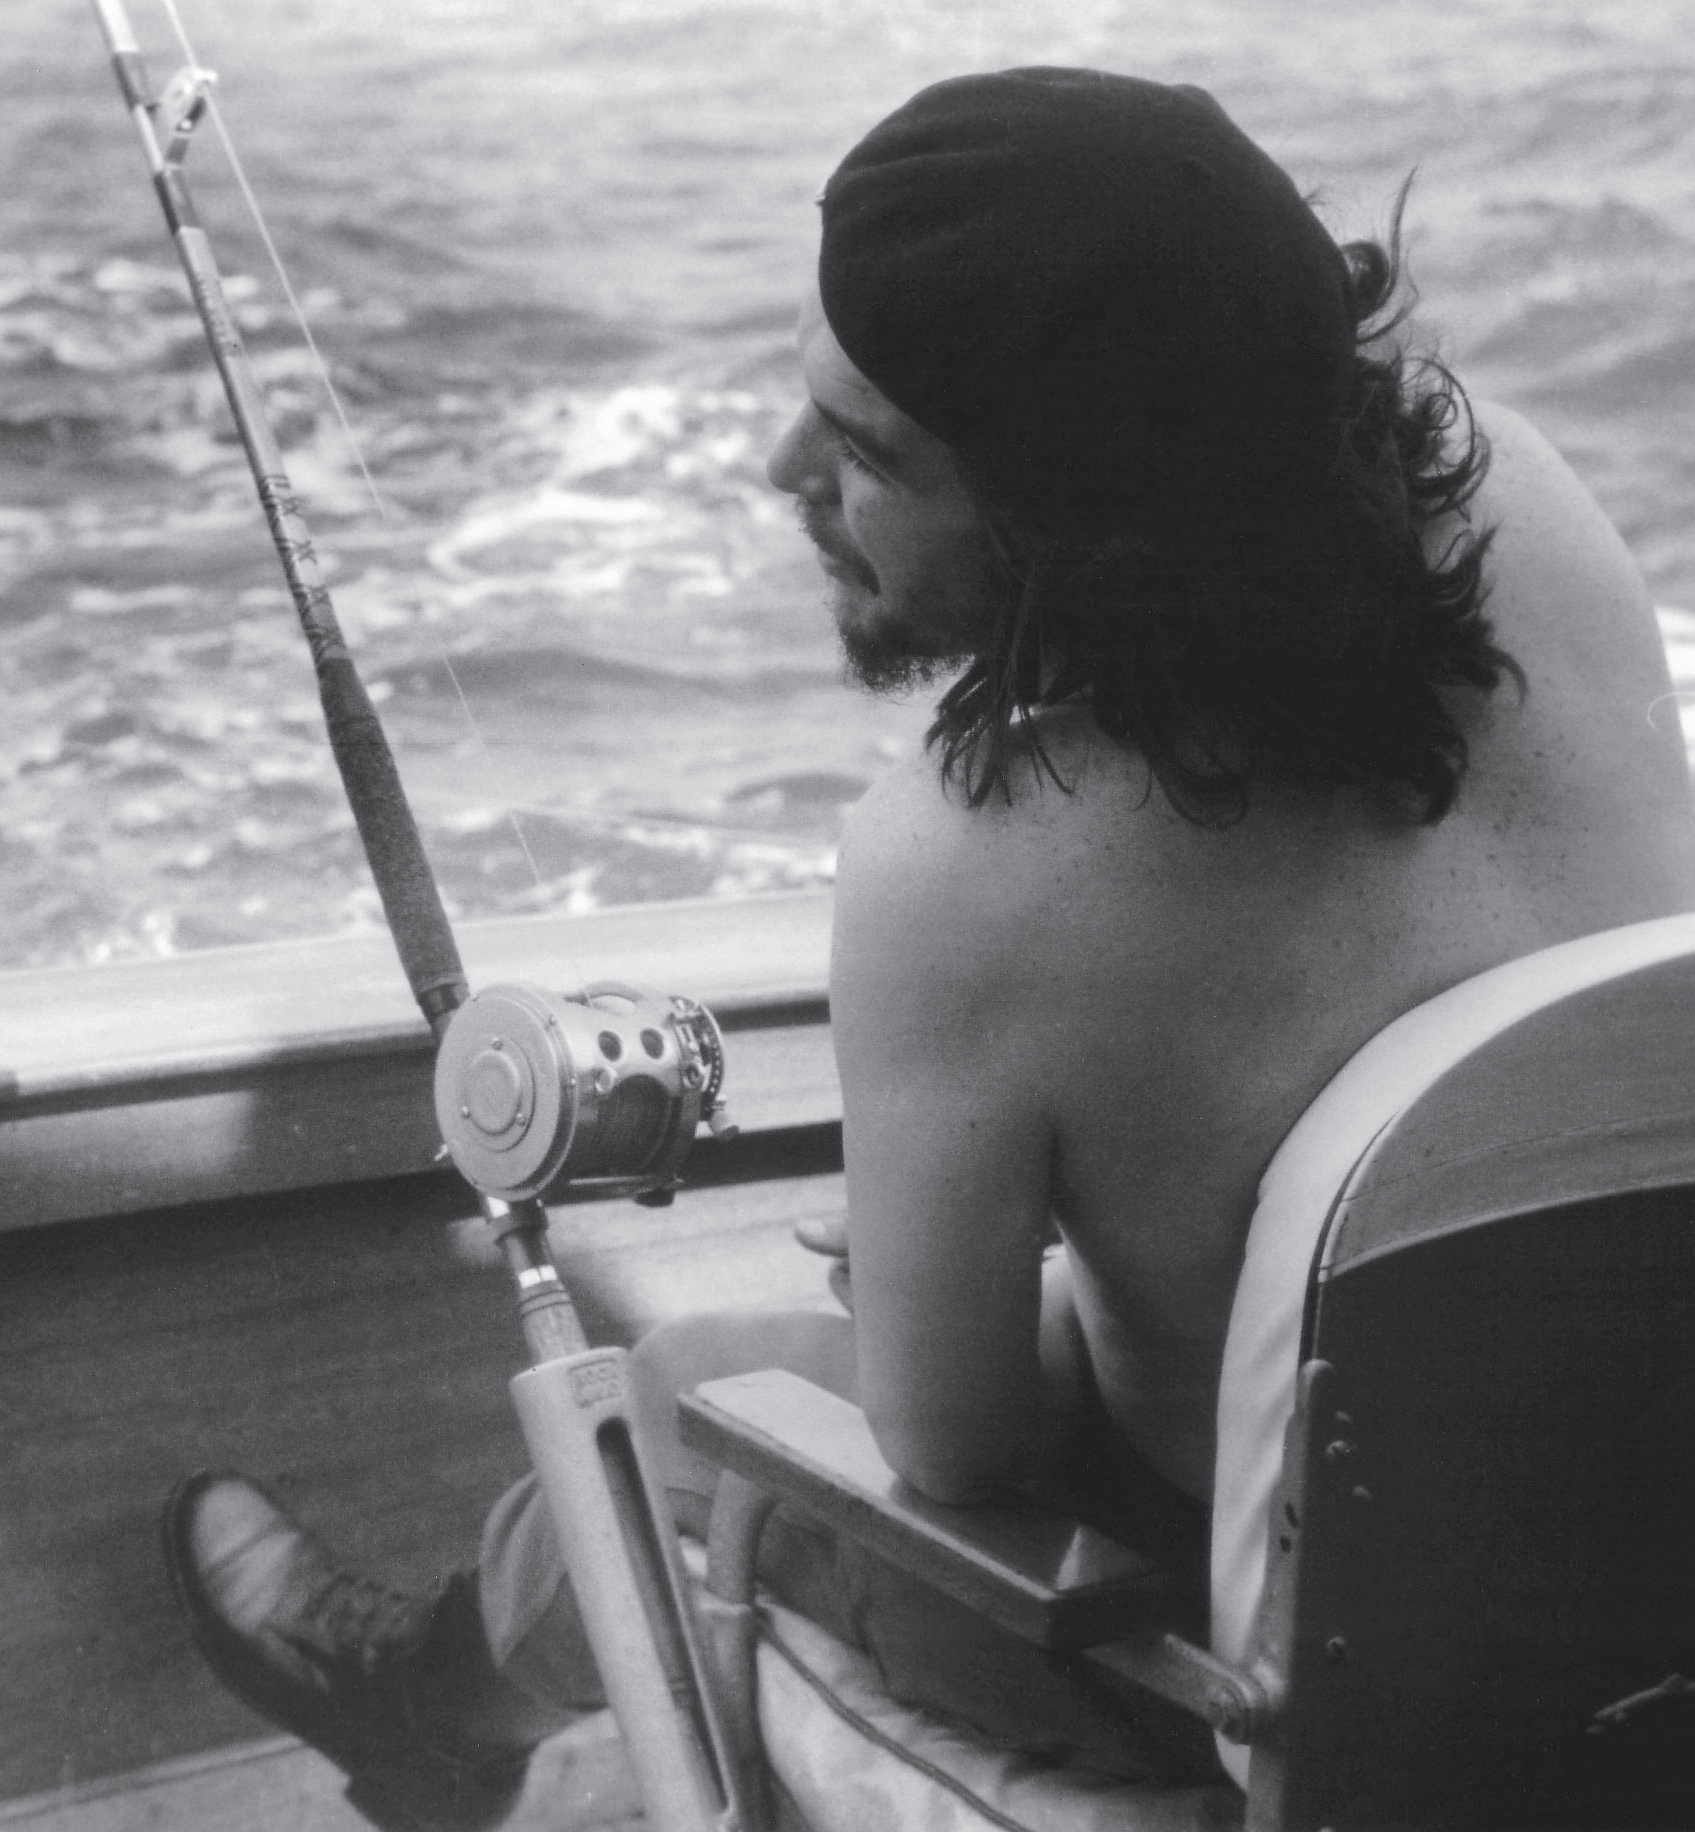 Che Guevara competes in a marlin fishing tournament, 1960. Photograph by Alberto Korda.